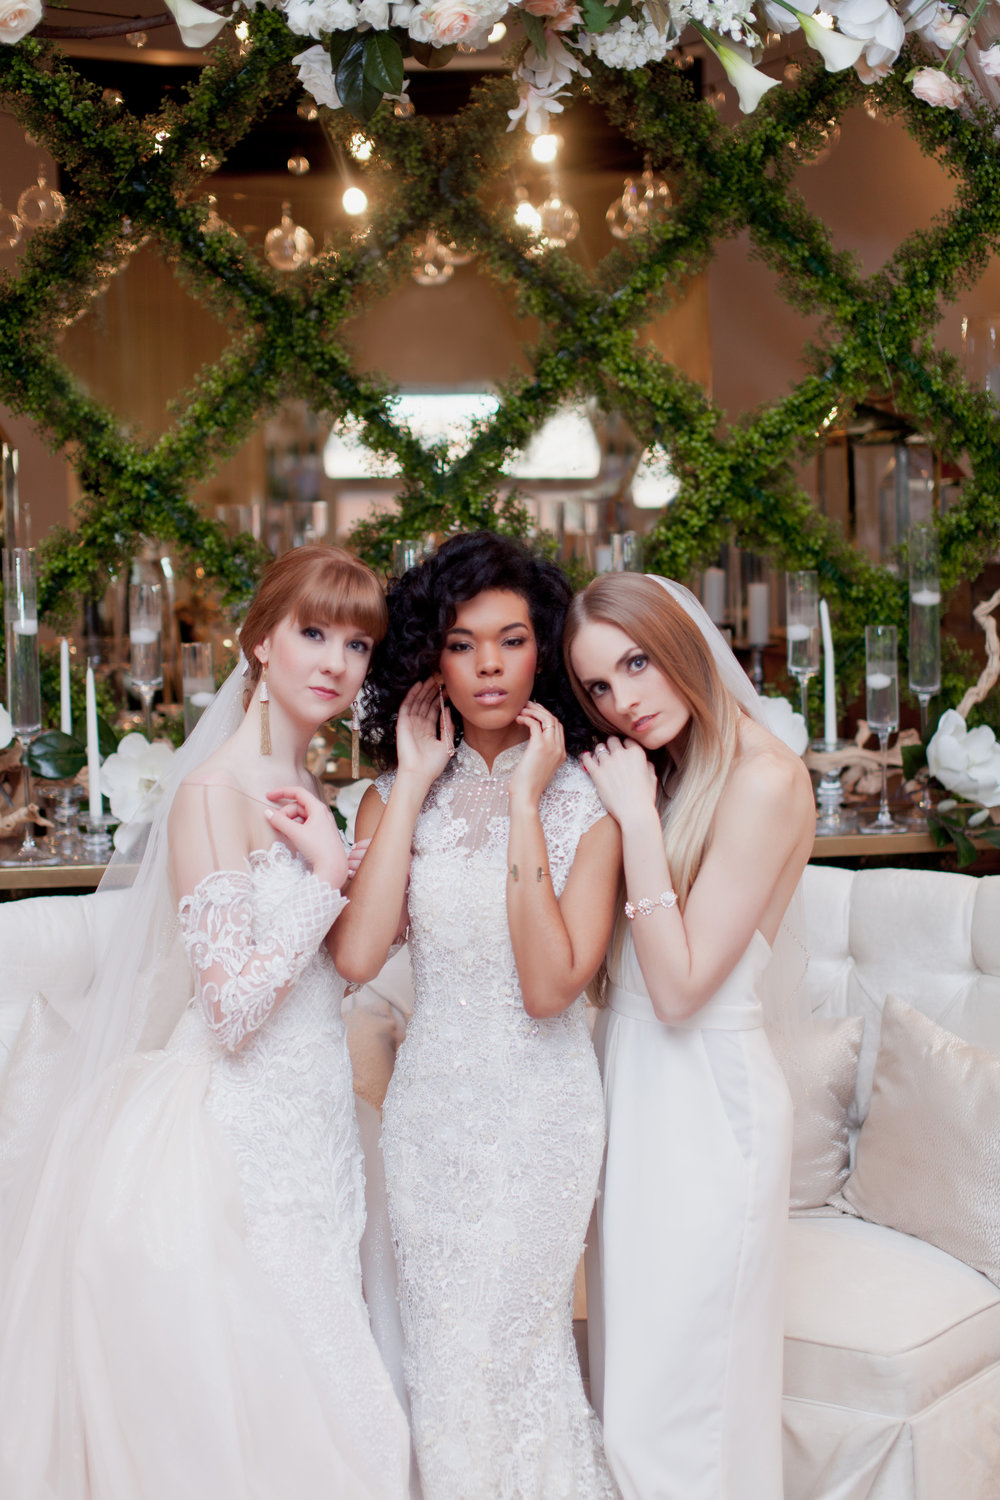 IvyandGraceShootbyIvyWeddingsCopyright201835.jpg